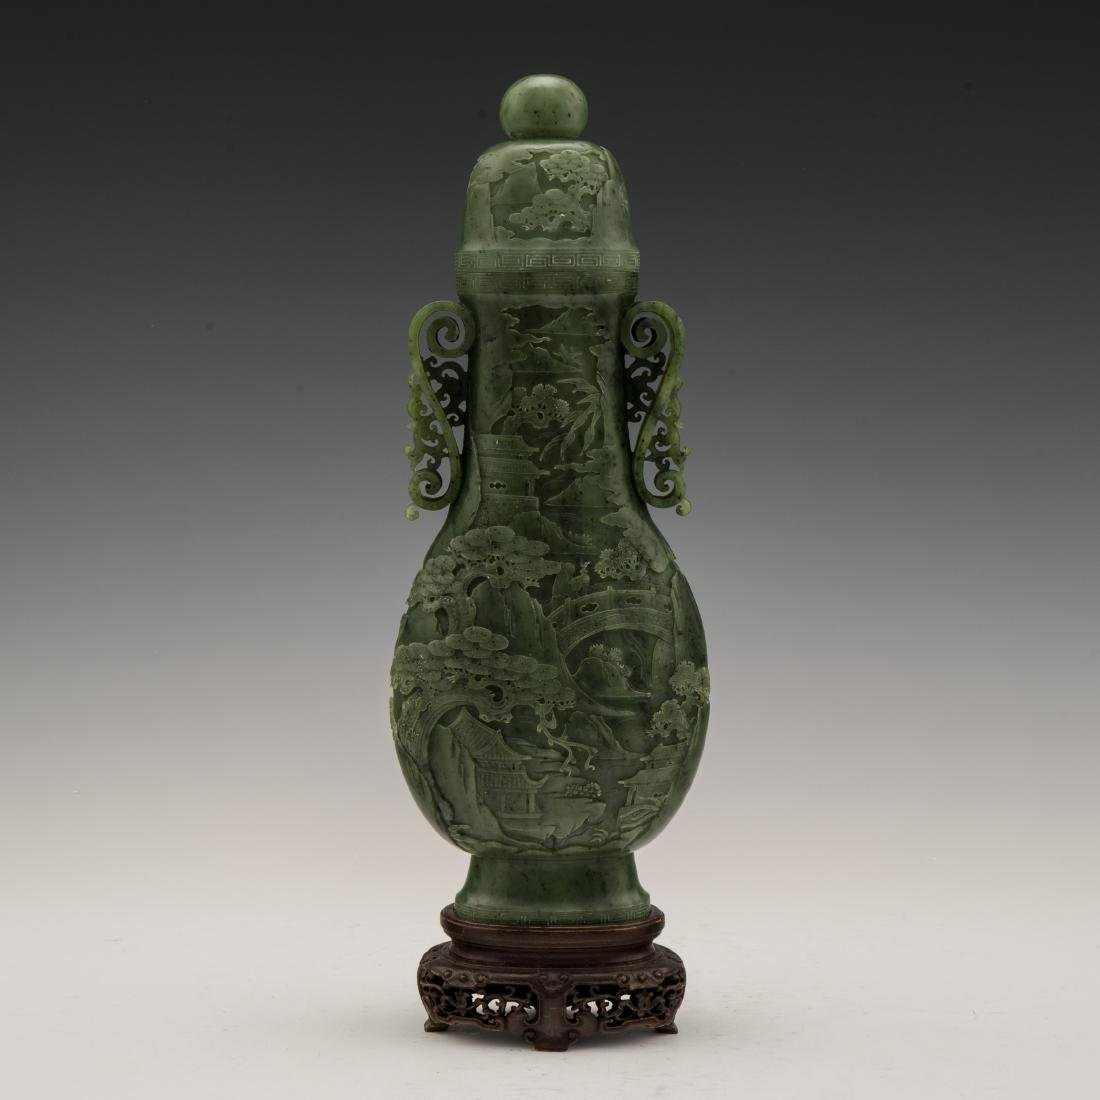 QING JADE VASE JADE VASE WITH MATCHING COVER